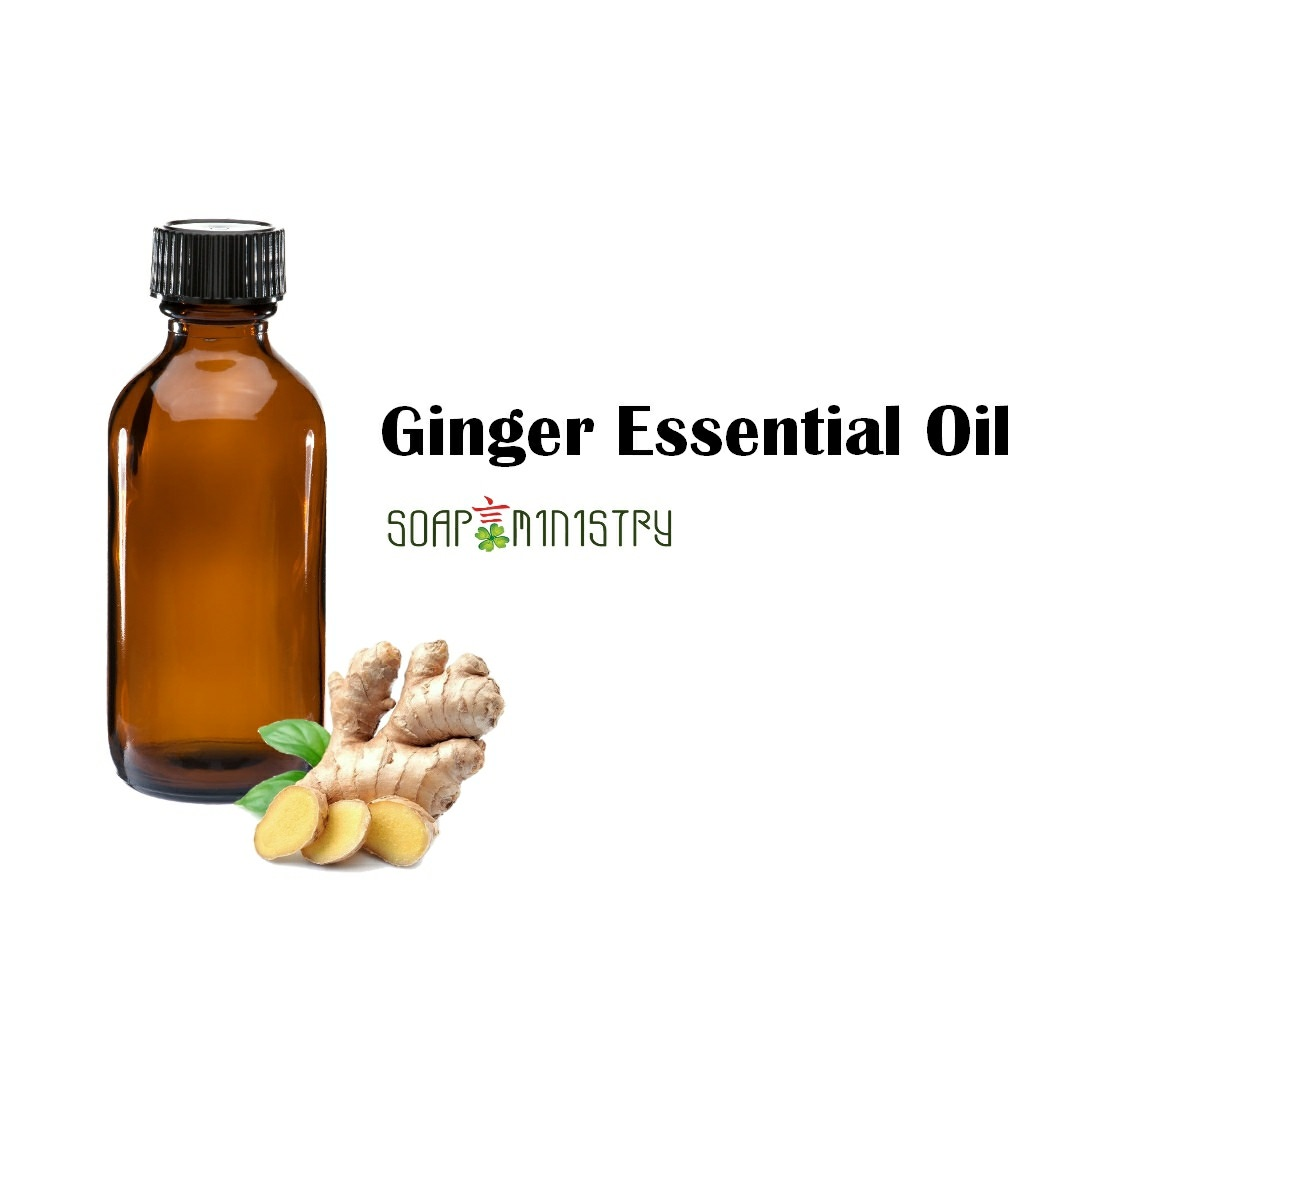 Ginger Essential Oil 1L